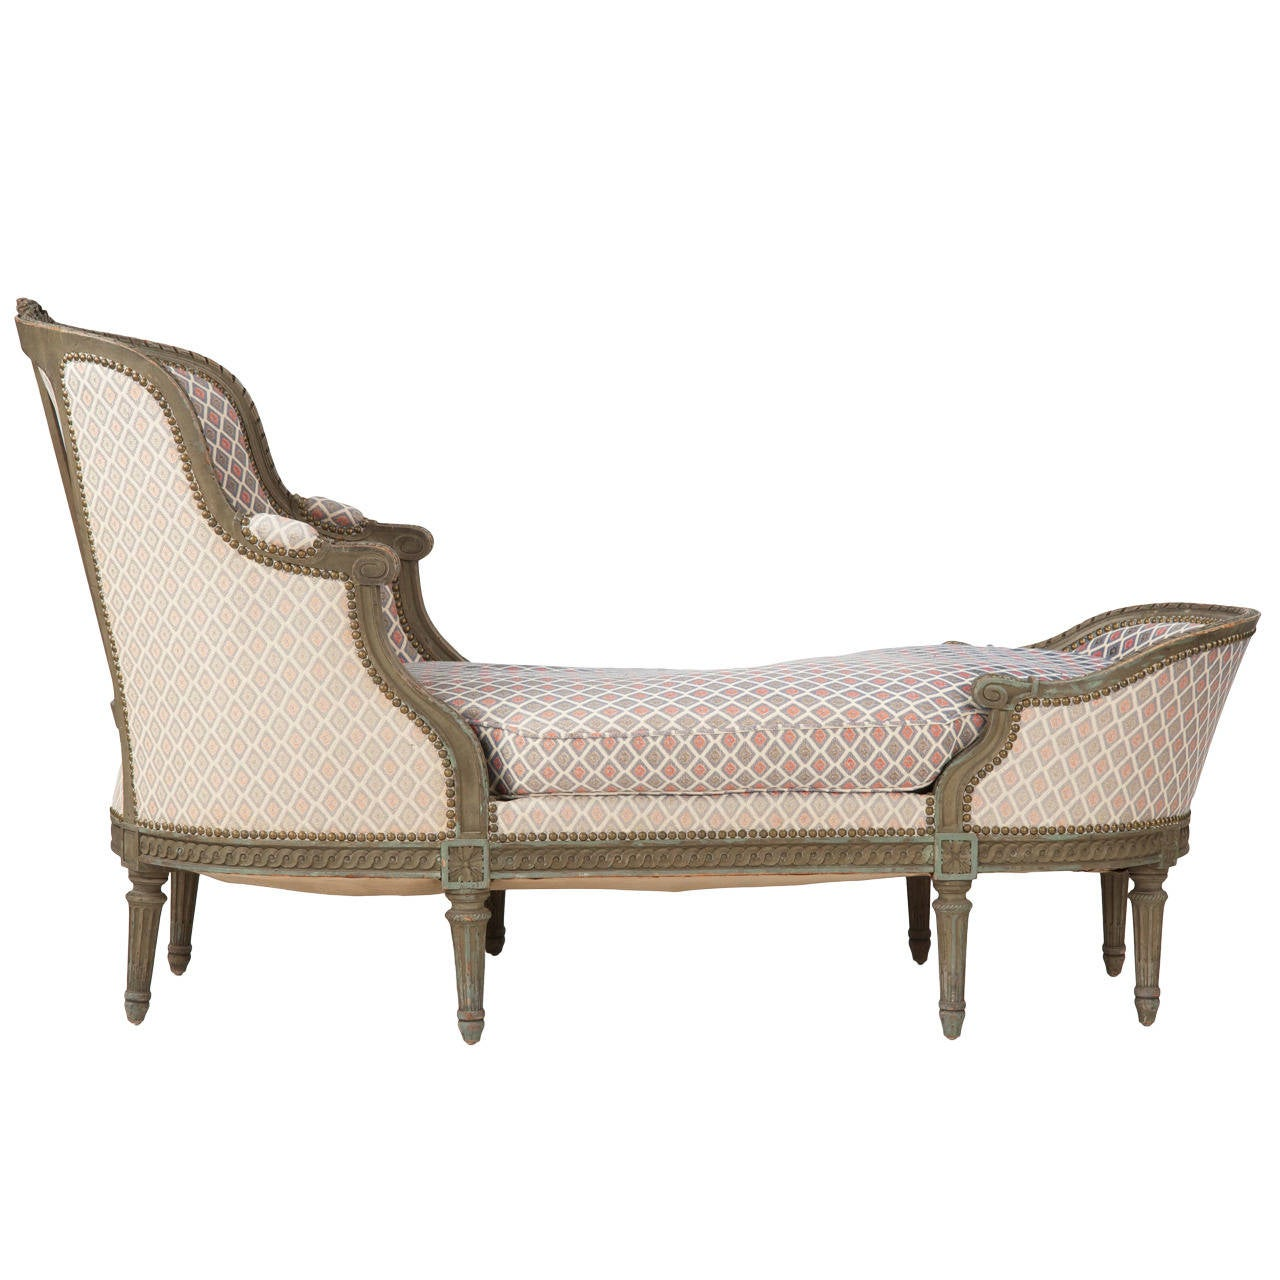 French Louis XVI Style Painted Antique Chaise Lounge Longue Settee, circa  1900 1 - French Louis XVI Style Painted Antique Chaise Lounge Longue Settee